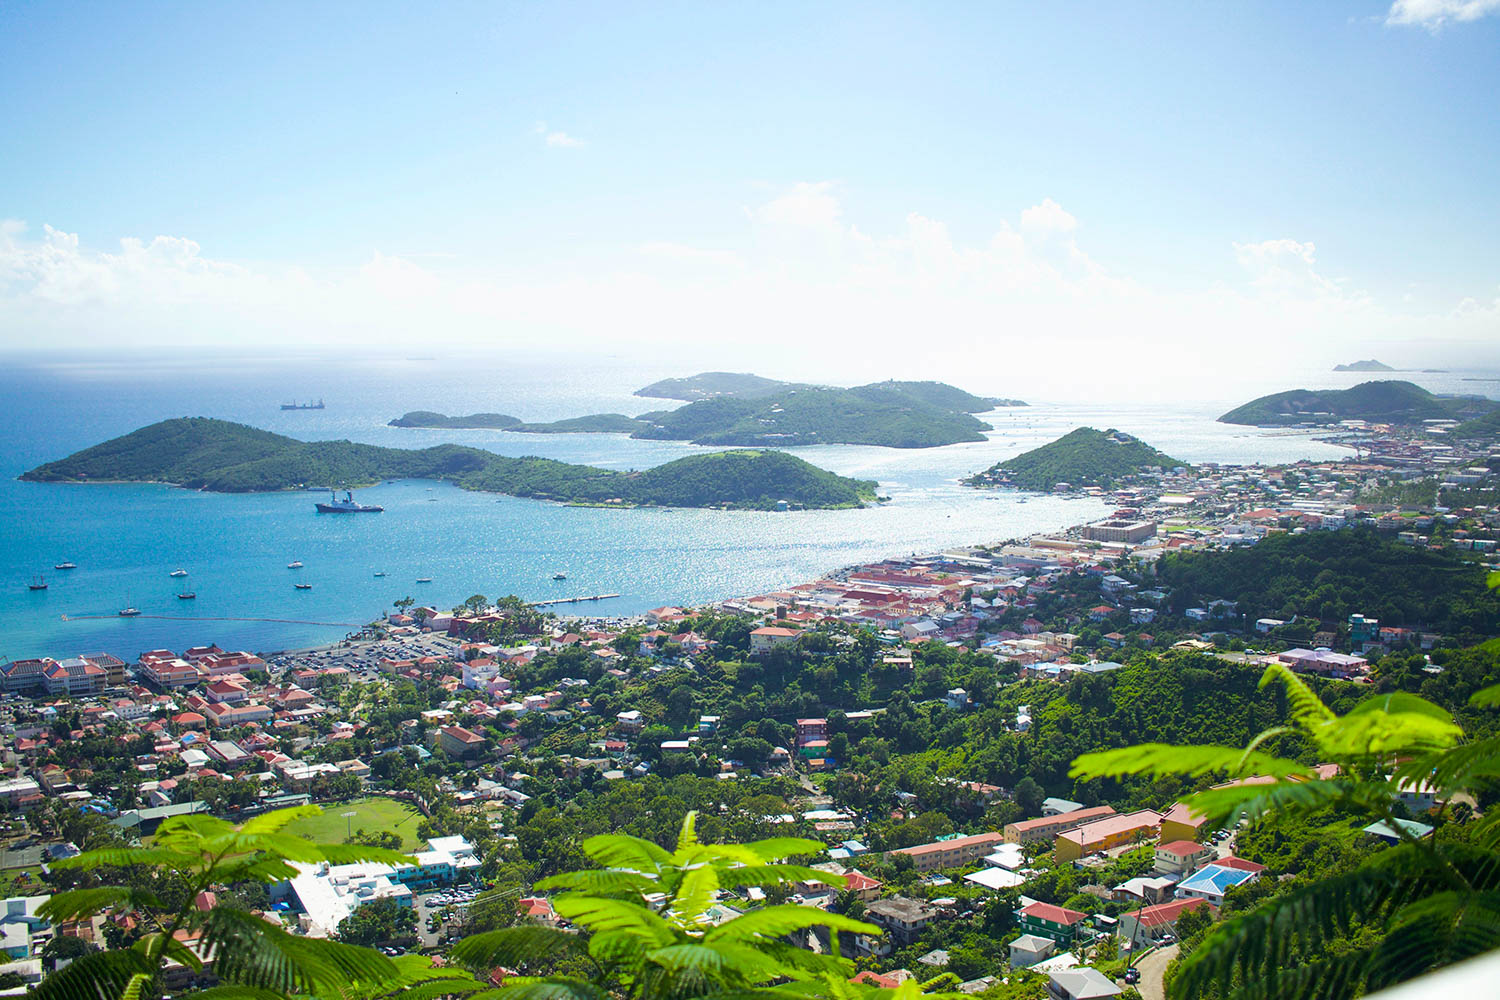 usvi skyline overlook